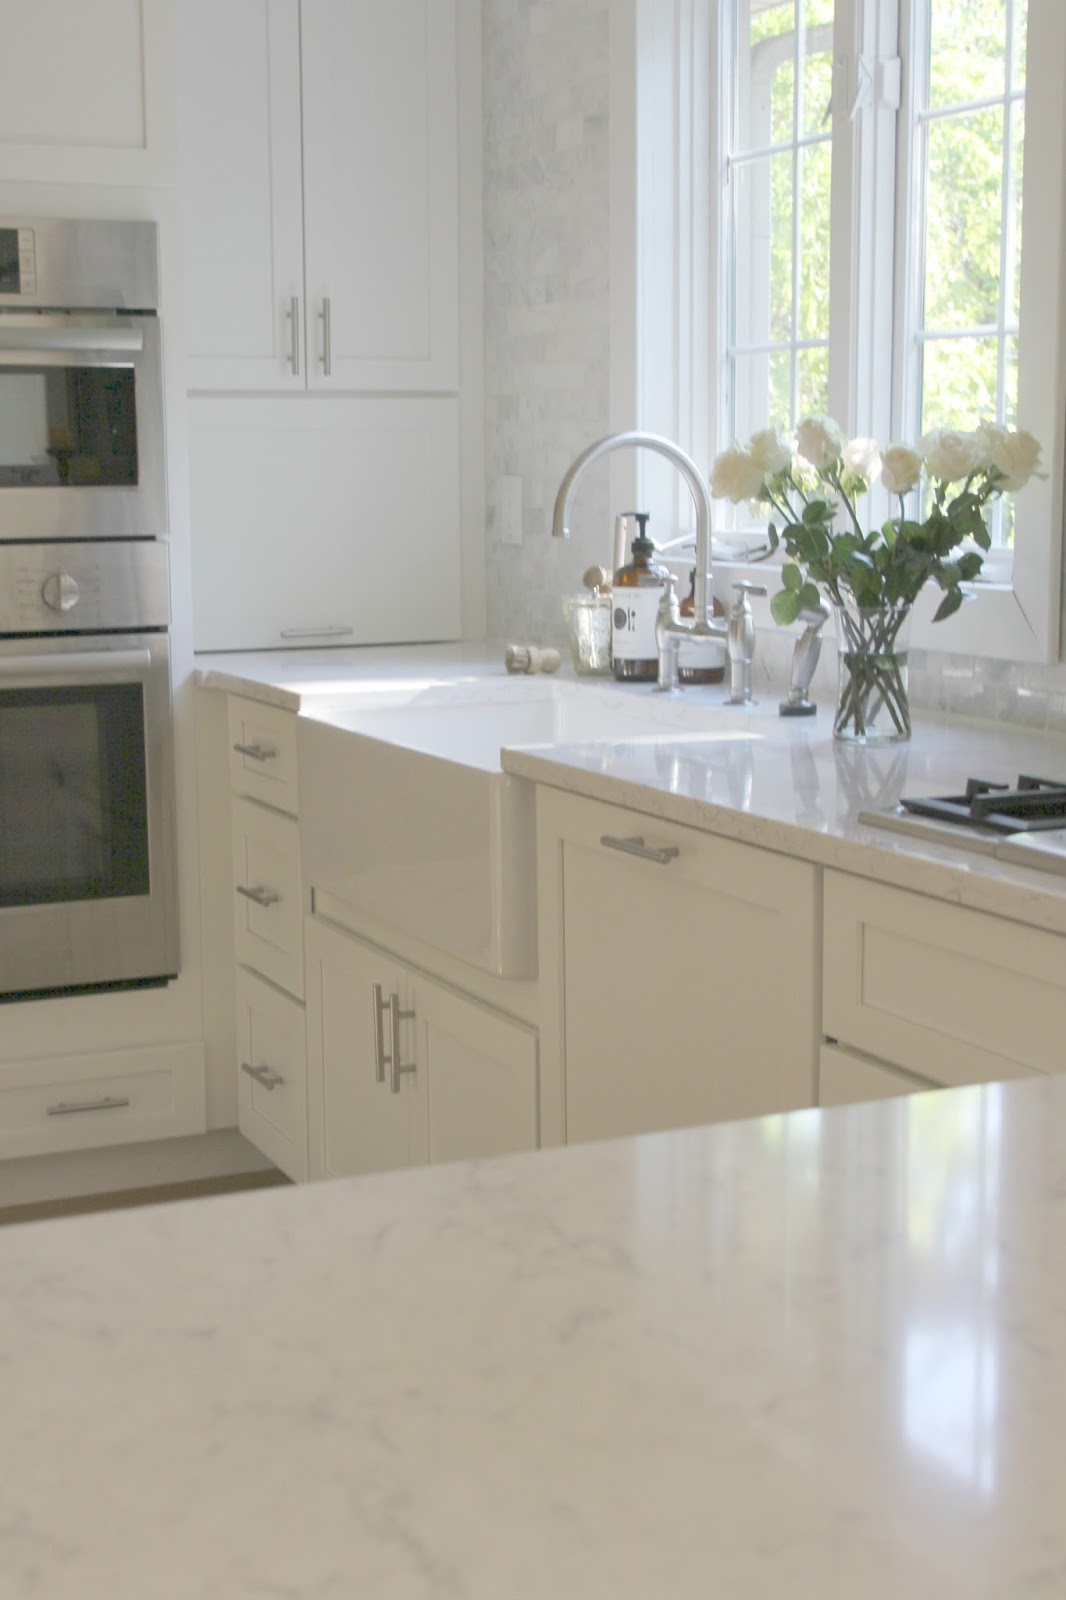 White modern farmhouse kitchen with Viatera quartz countertop - Hello Lovely Studio